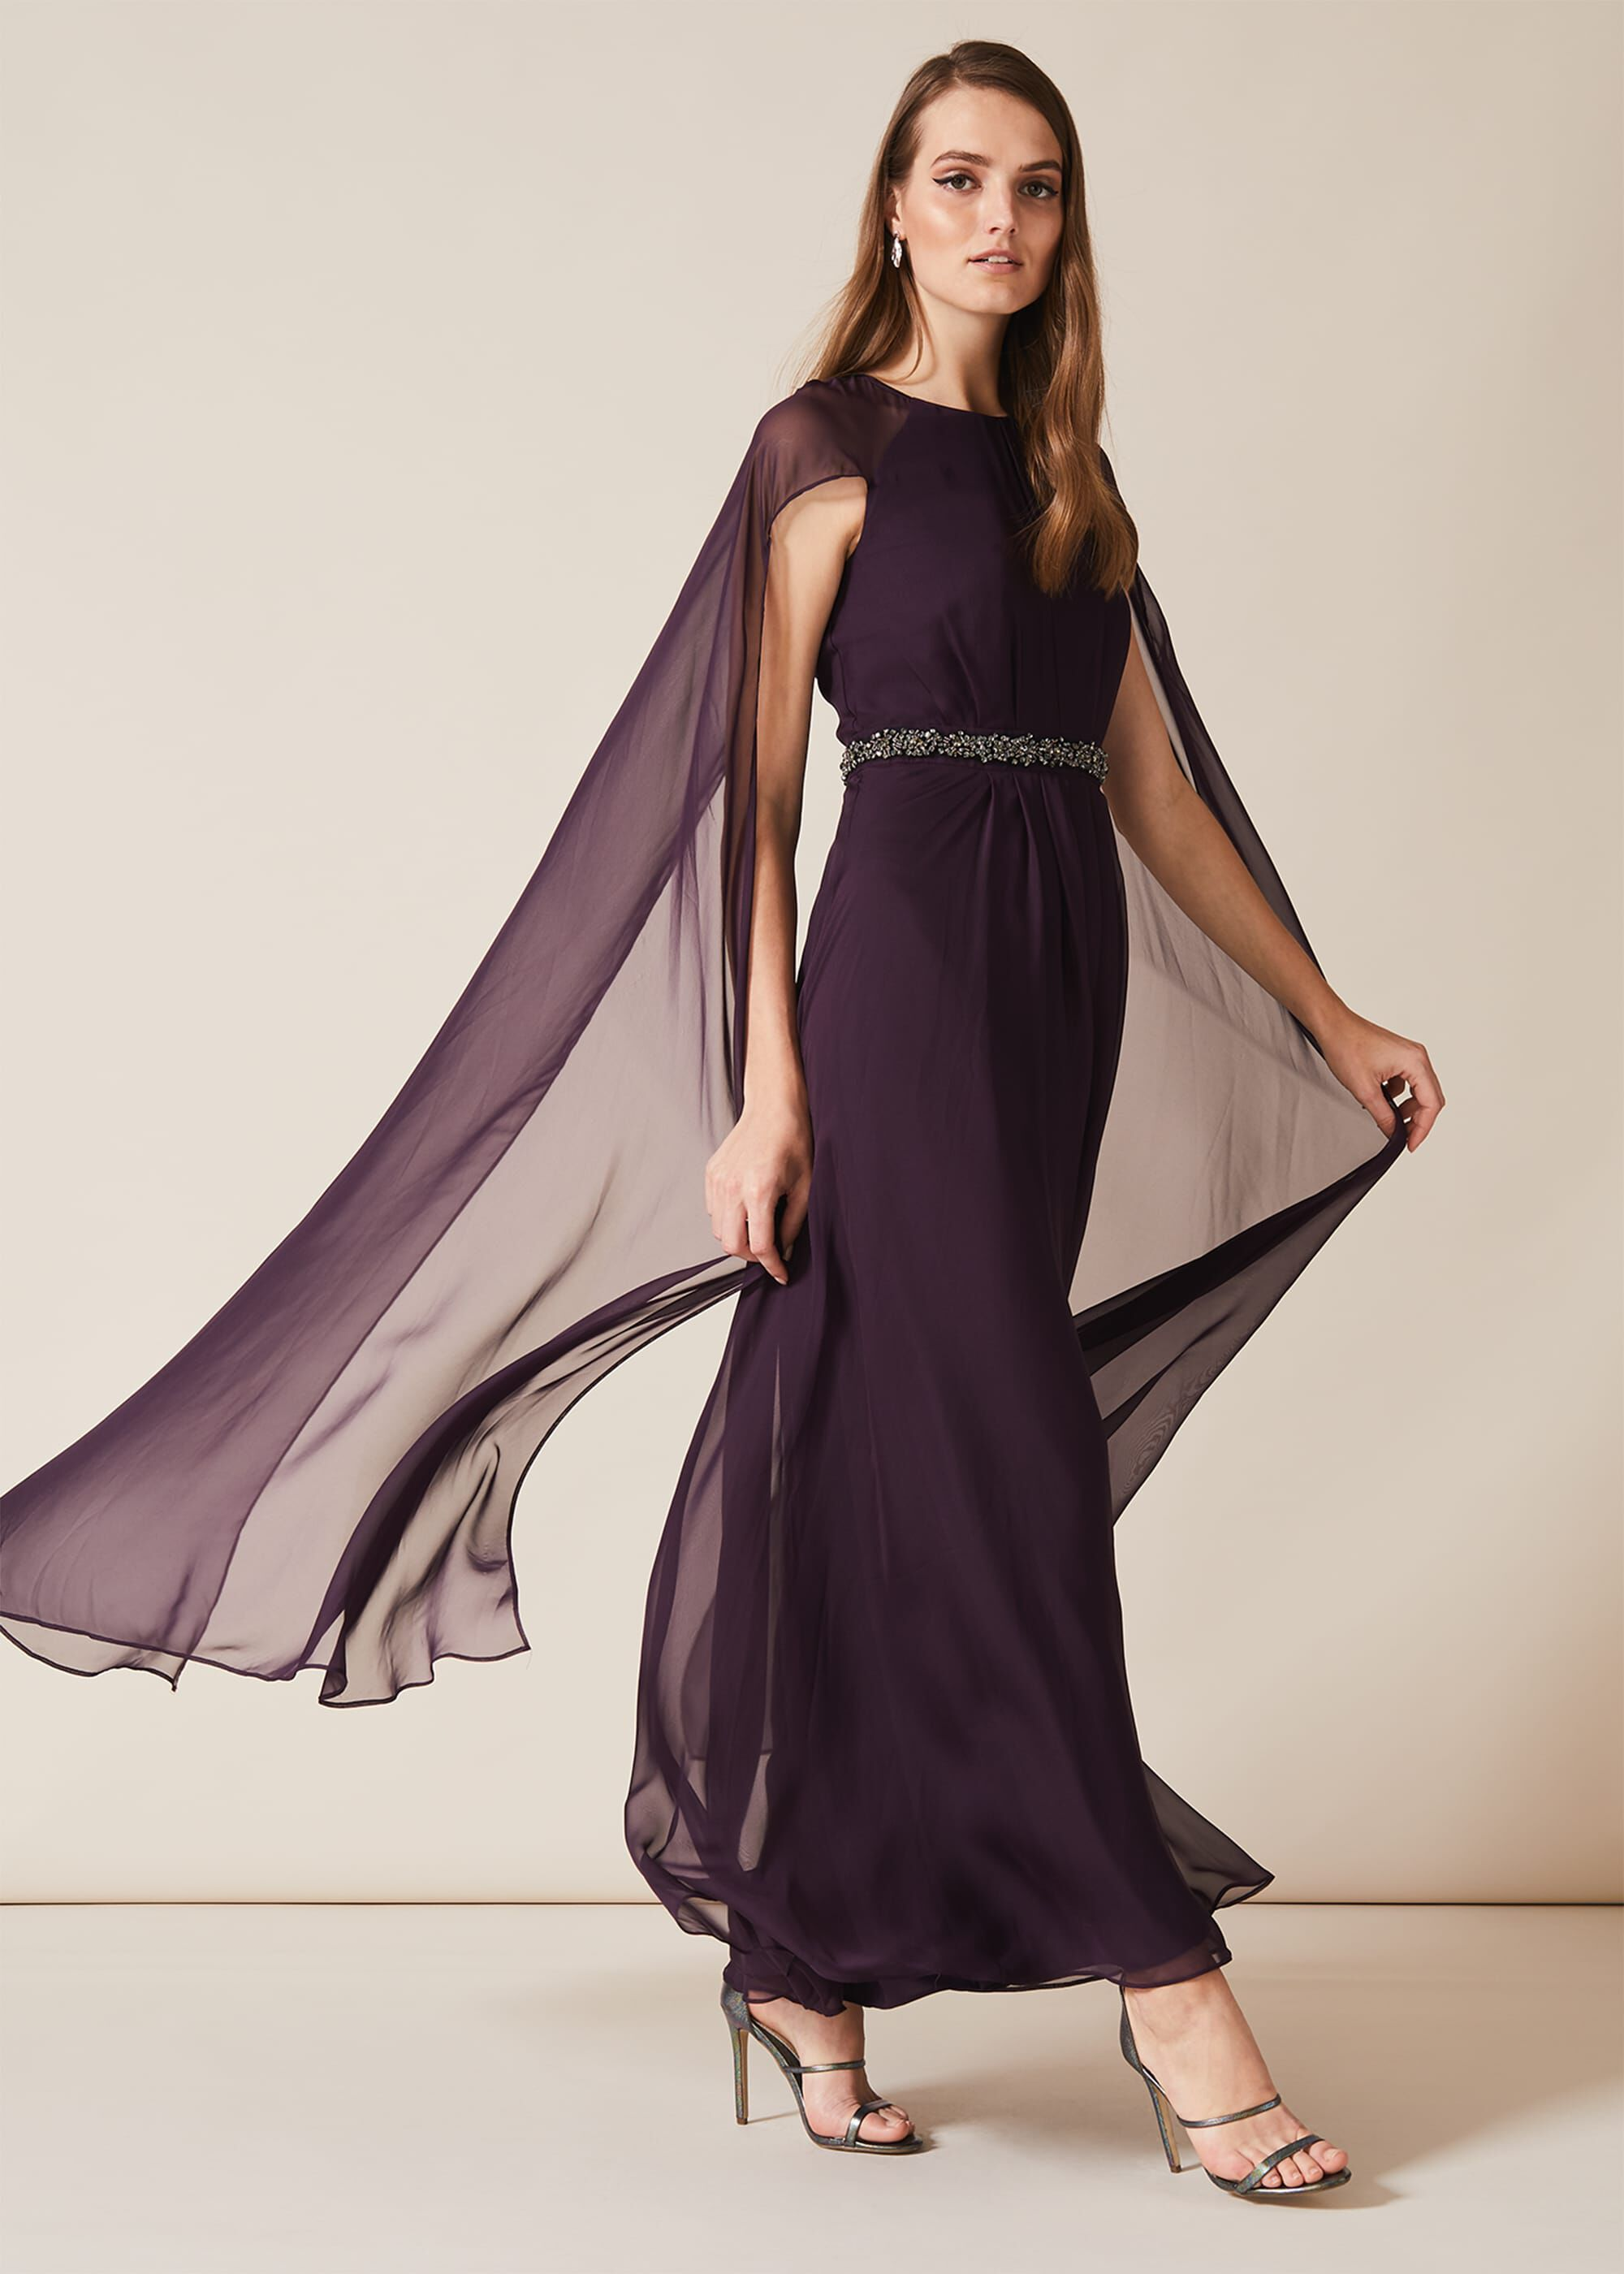 70s Prom, Formal, Evening, Party Dresses Phase Eight Samira Cape Beaded Dress Purple Maxi Occasion Dress £295.00 AT vintagedancer.com